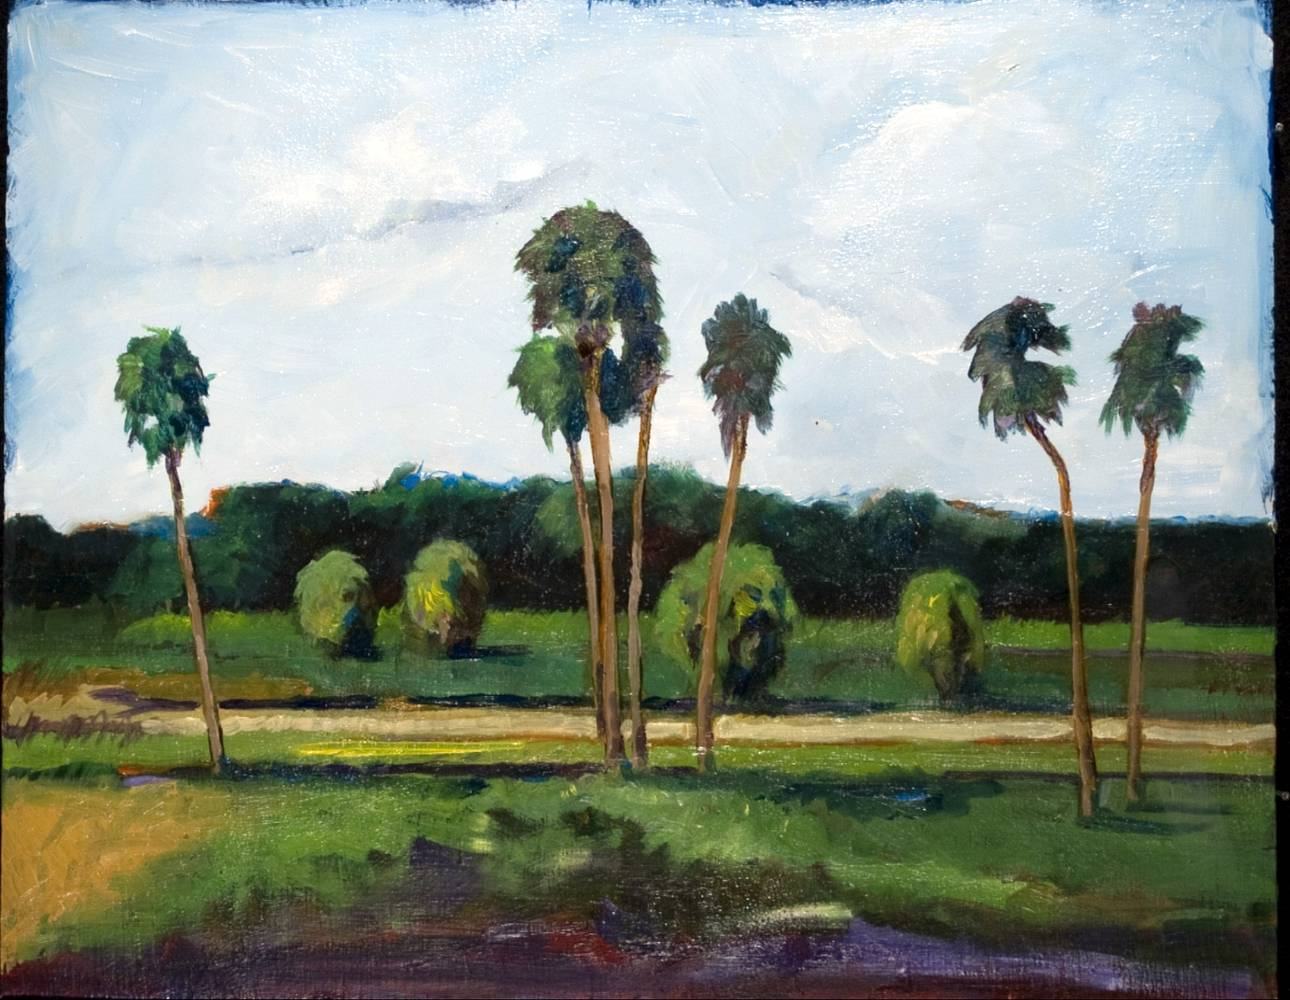 Oil painting Sarasota County by Paul Sershon